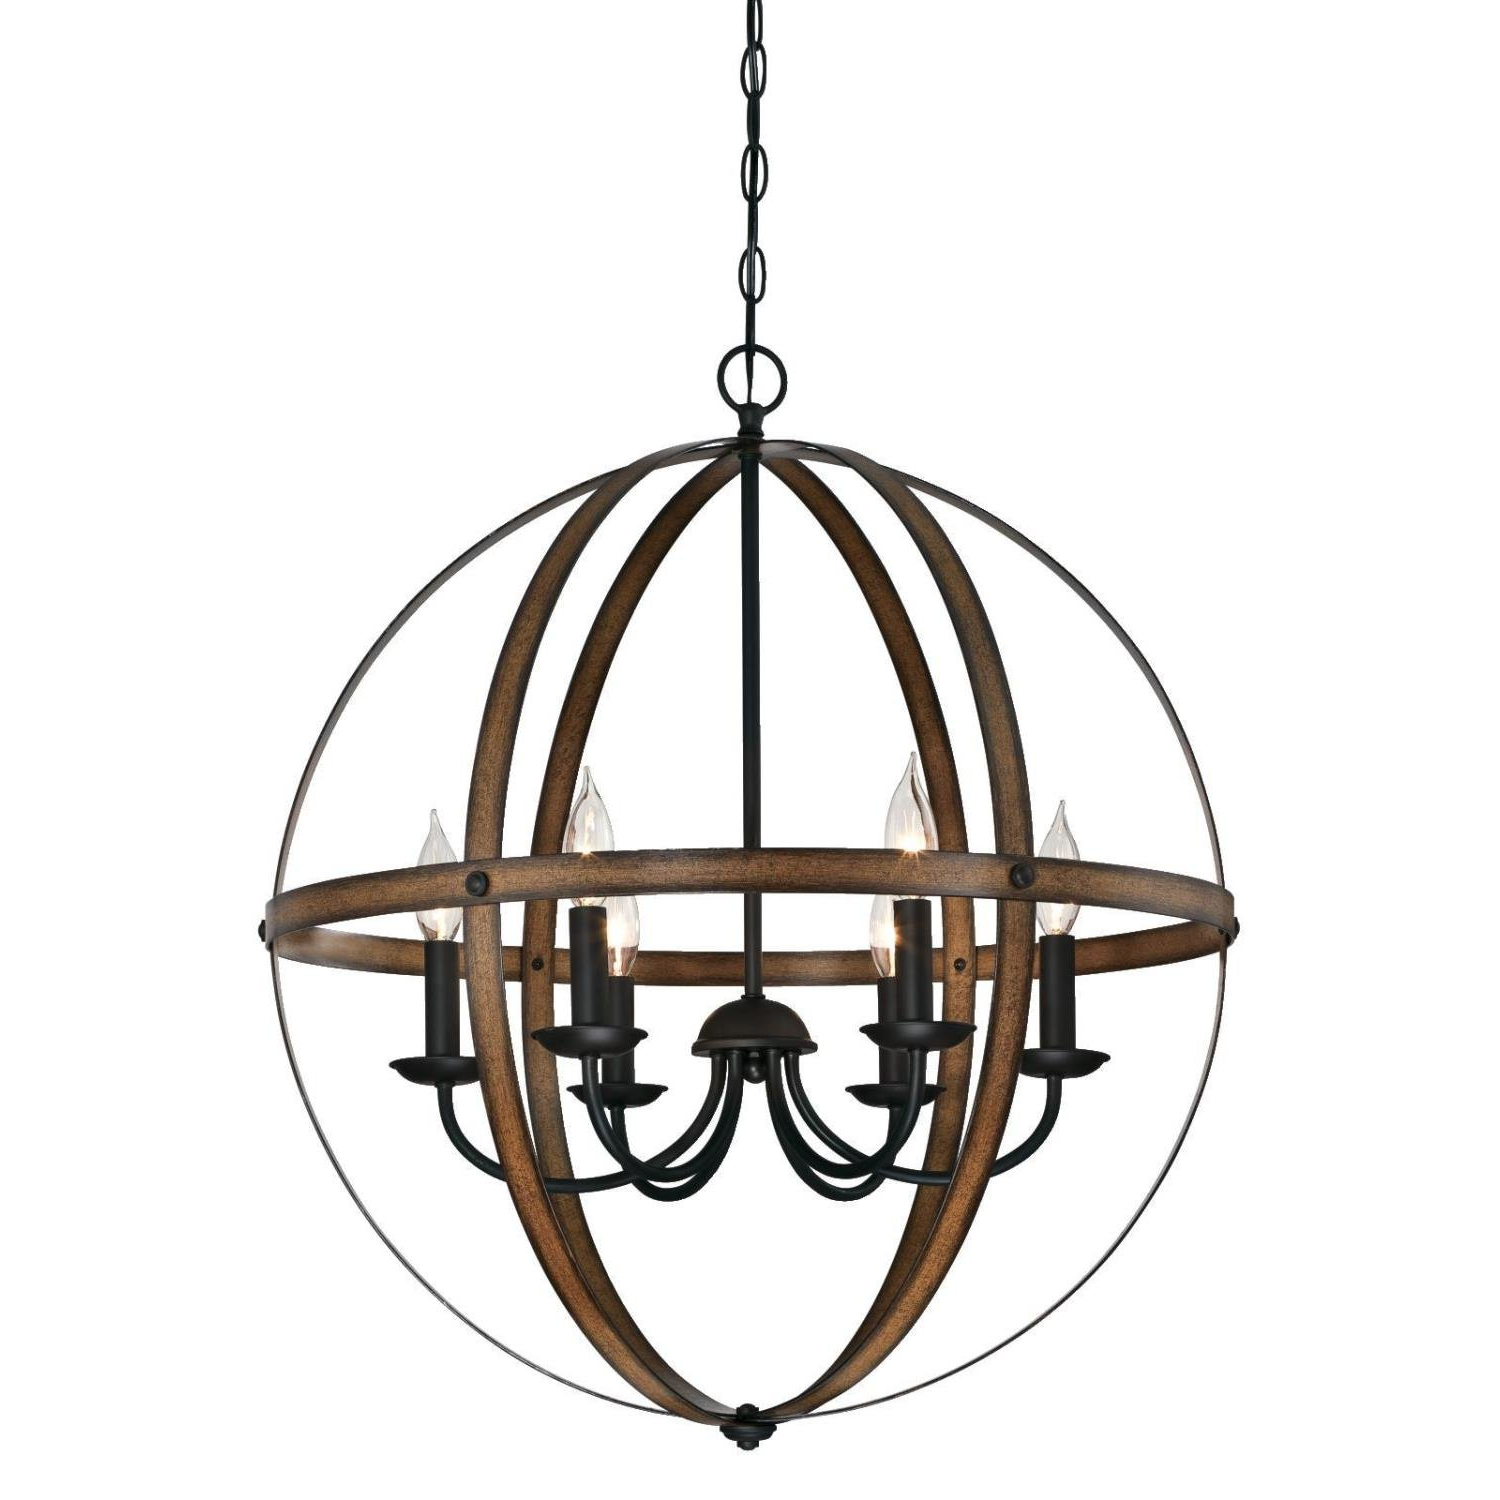 Donna 6 Light Globe Chandeliers Throughout Popular Joon 6 Light Globe Chandelier (View 11 of 20)